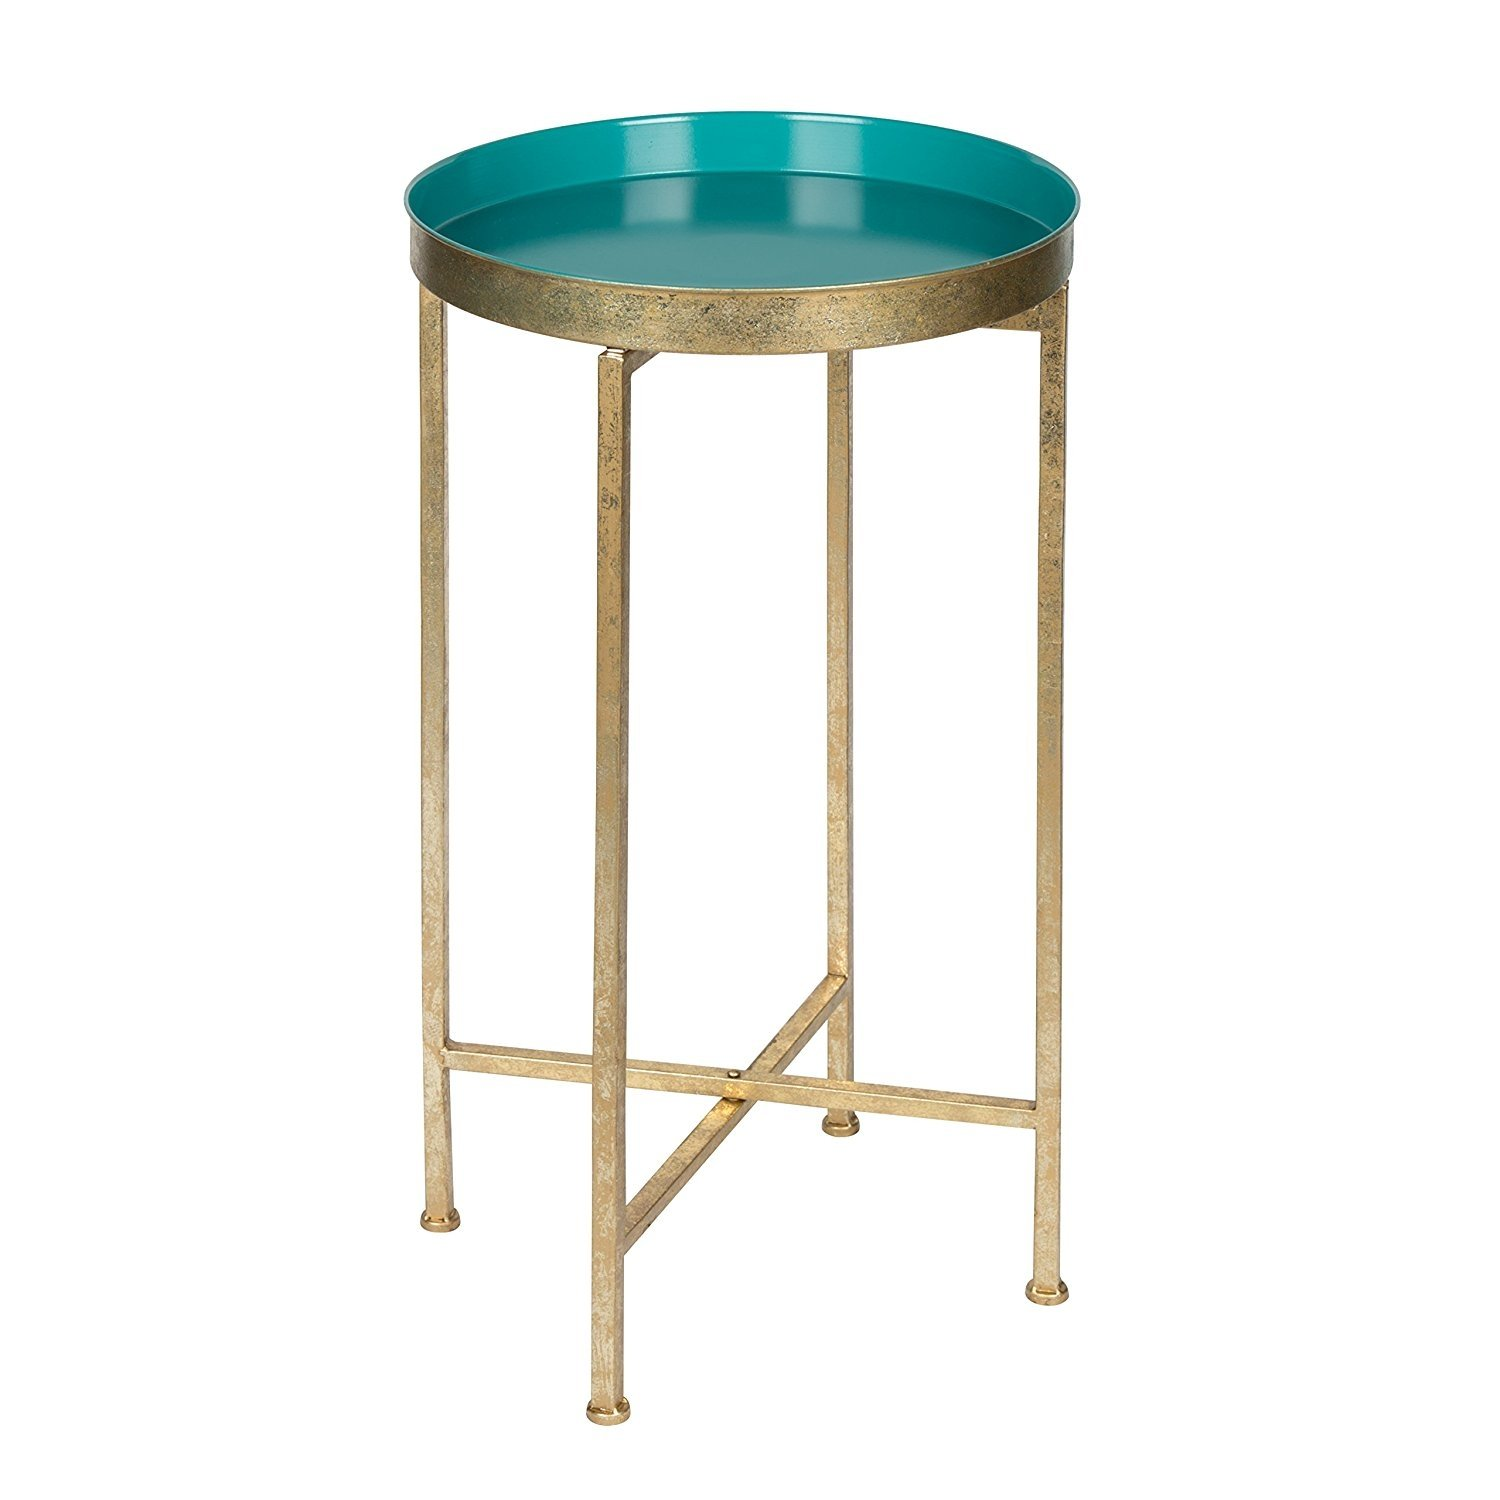 kate and laurel celia round metal foldable tray accent table teal medium gold olympia furniture bar dining set custom tables west elm arc lamp small wooden mirror frame white